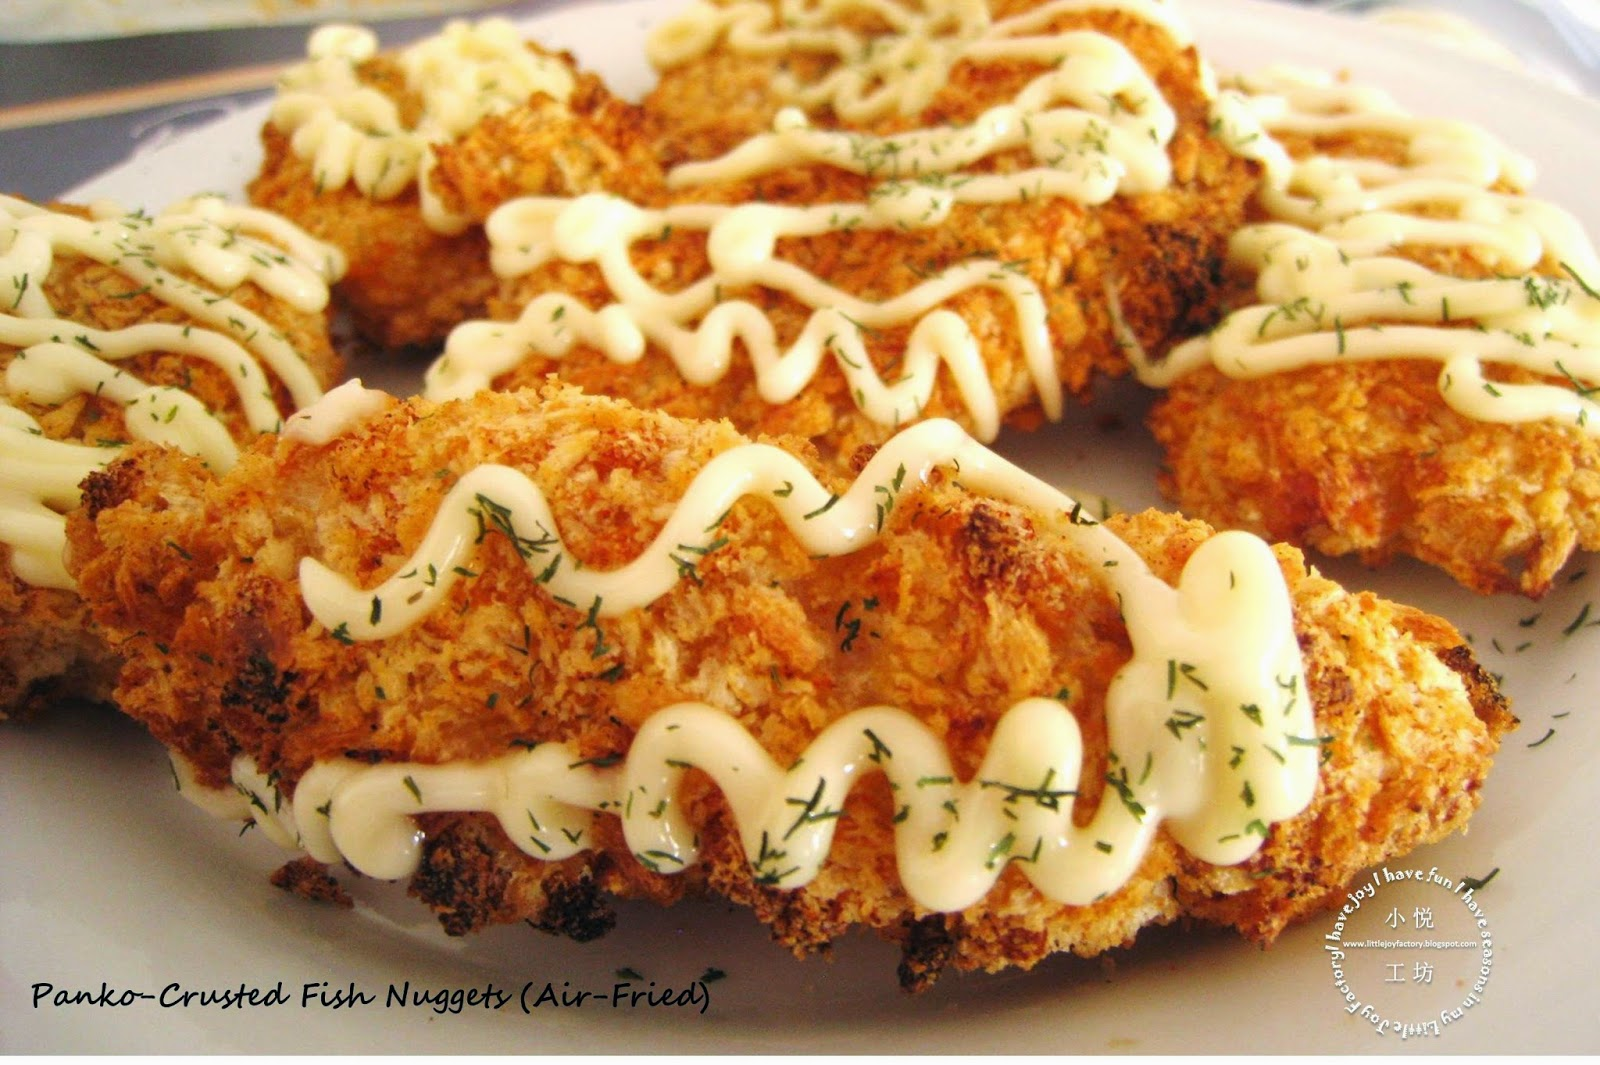 Little Joy Factory: Air-Fried Panko-Crusted Fish Nuggets ... - photo#37